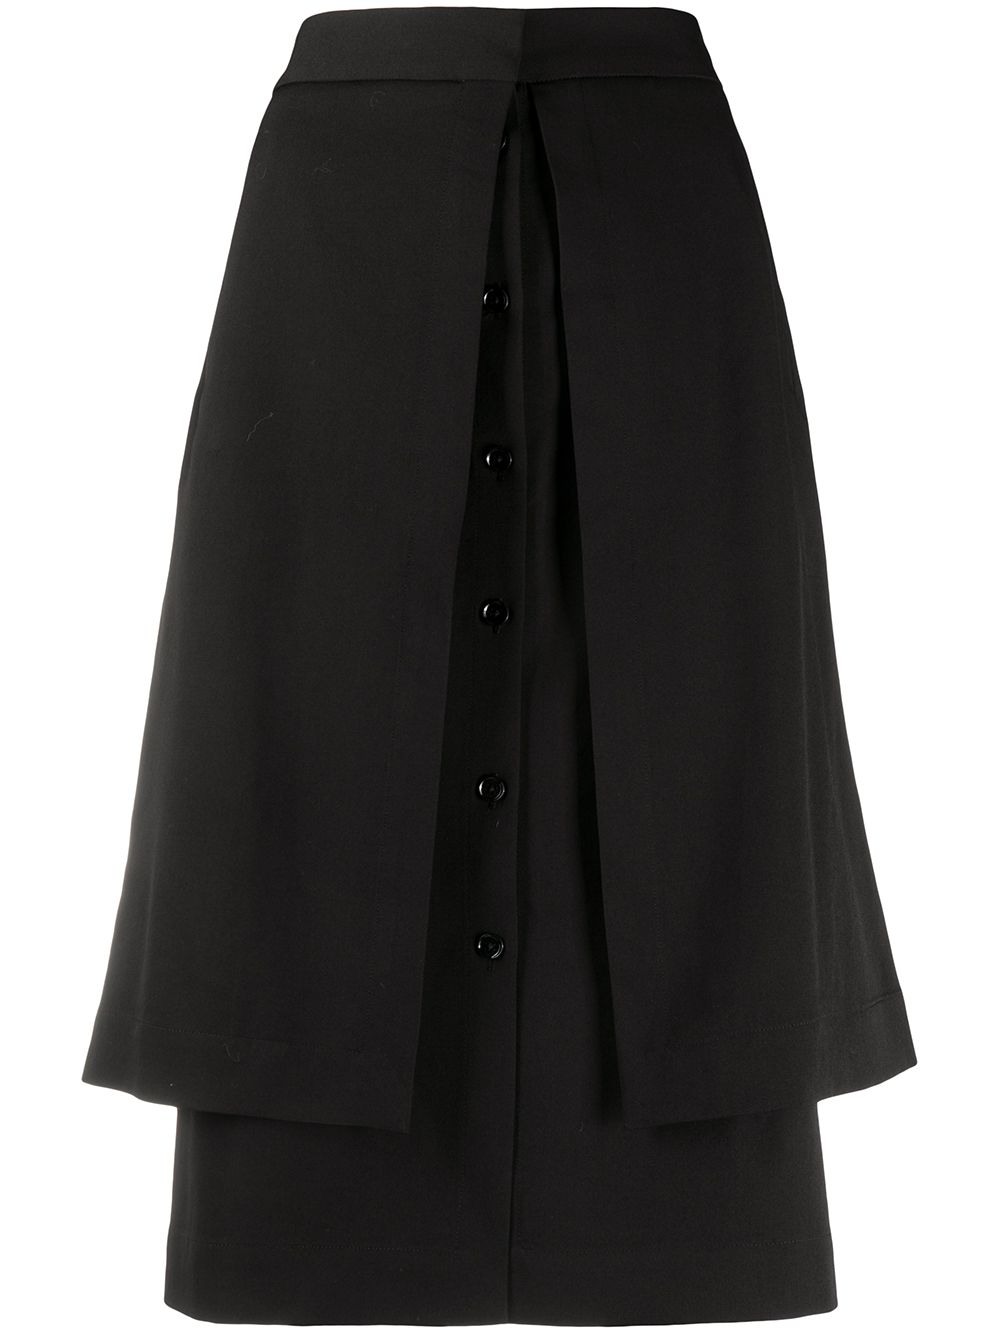 LEMAIRE | Skirt | W203SK253LF490999